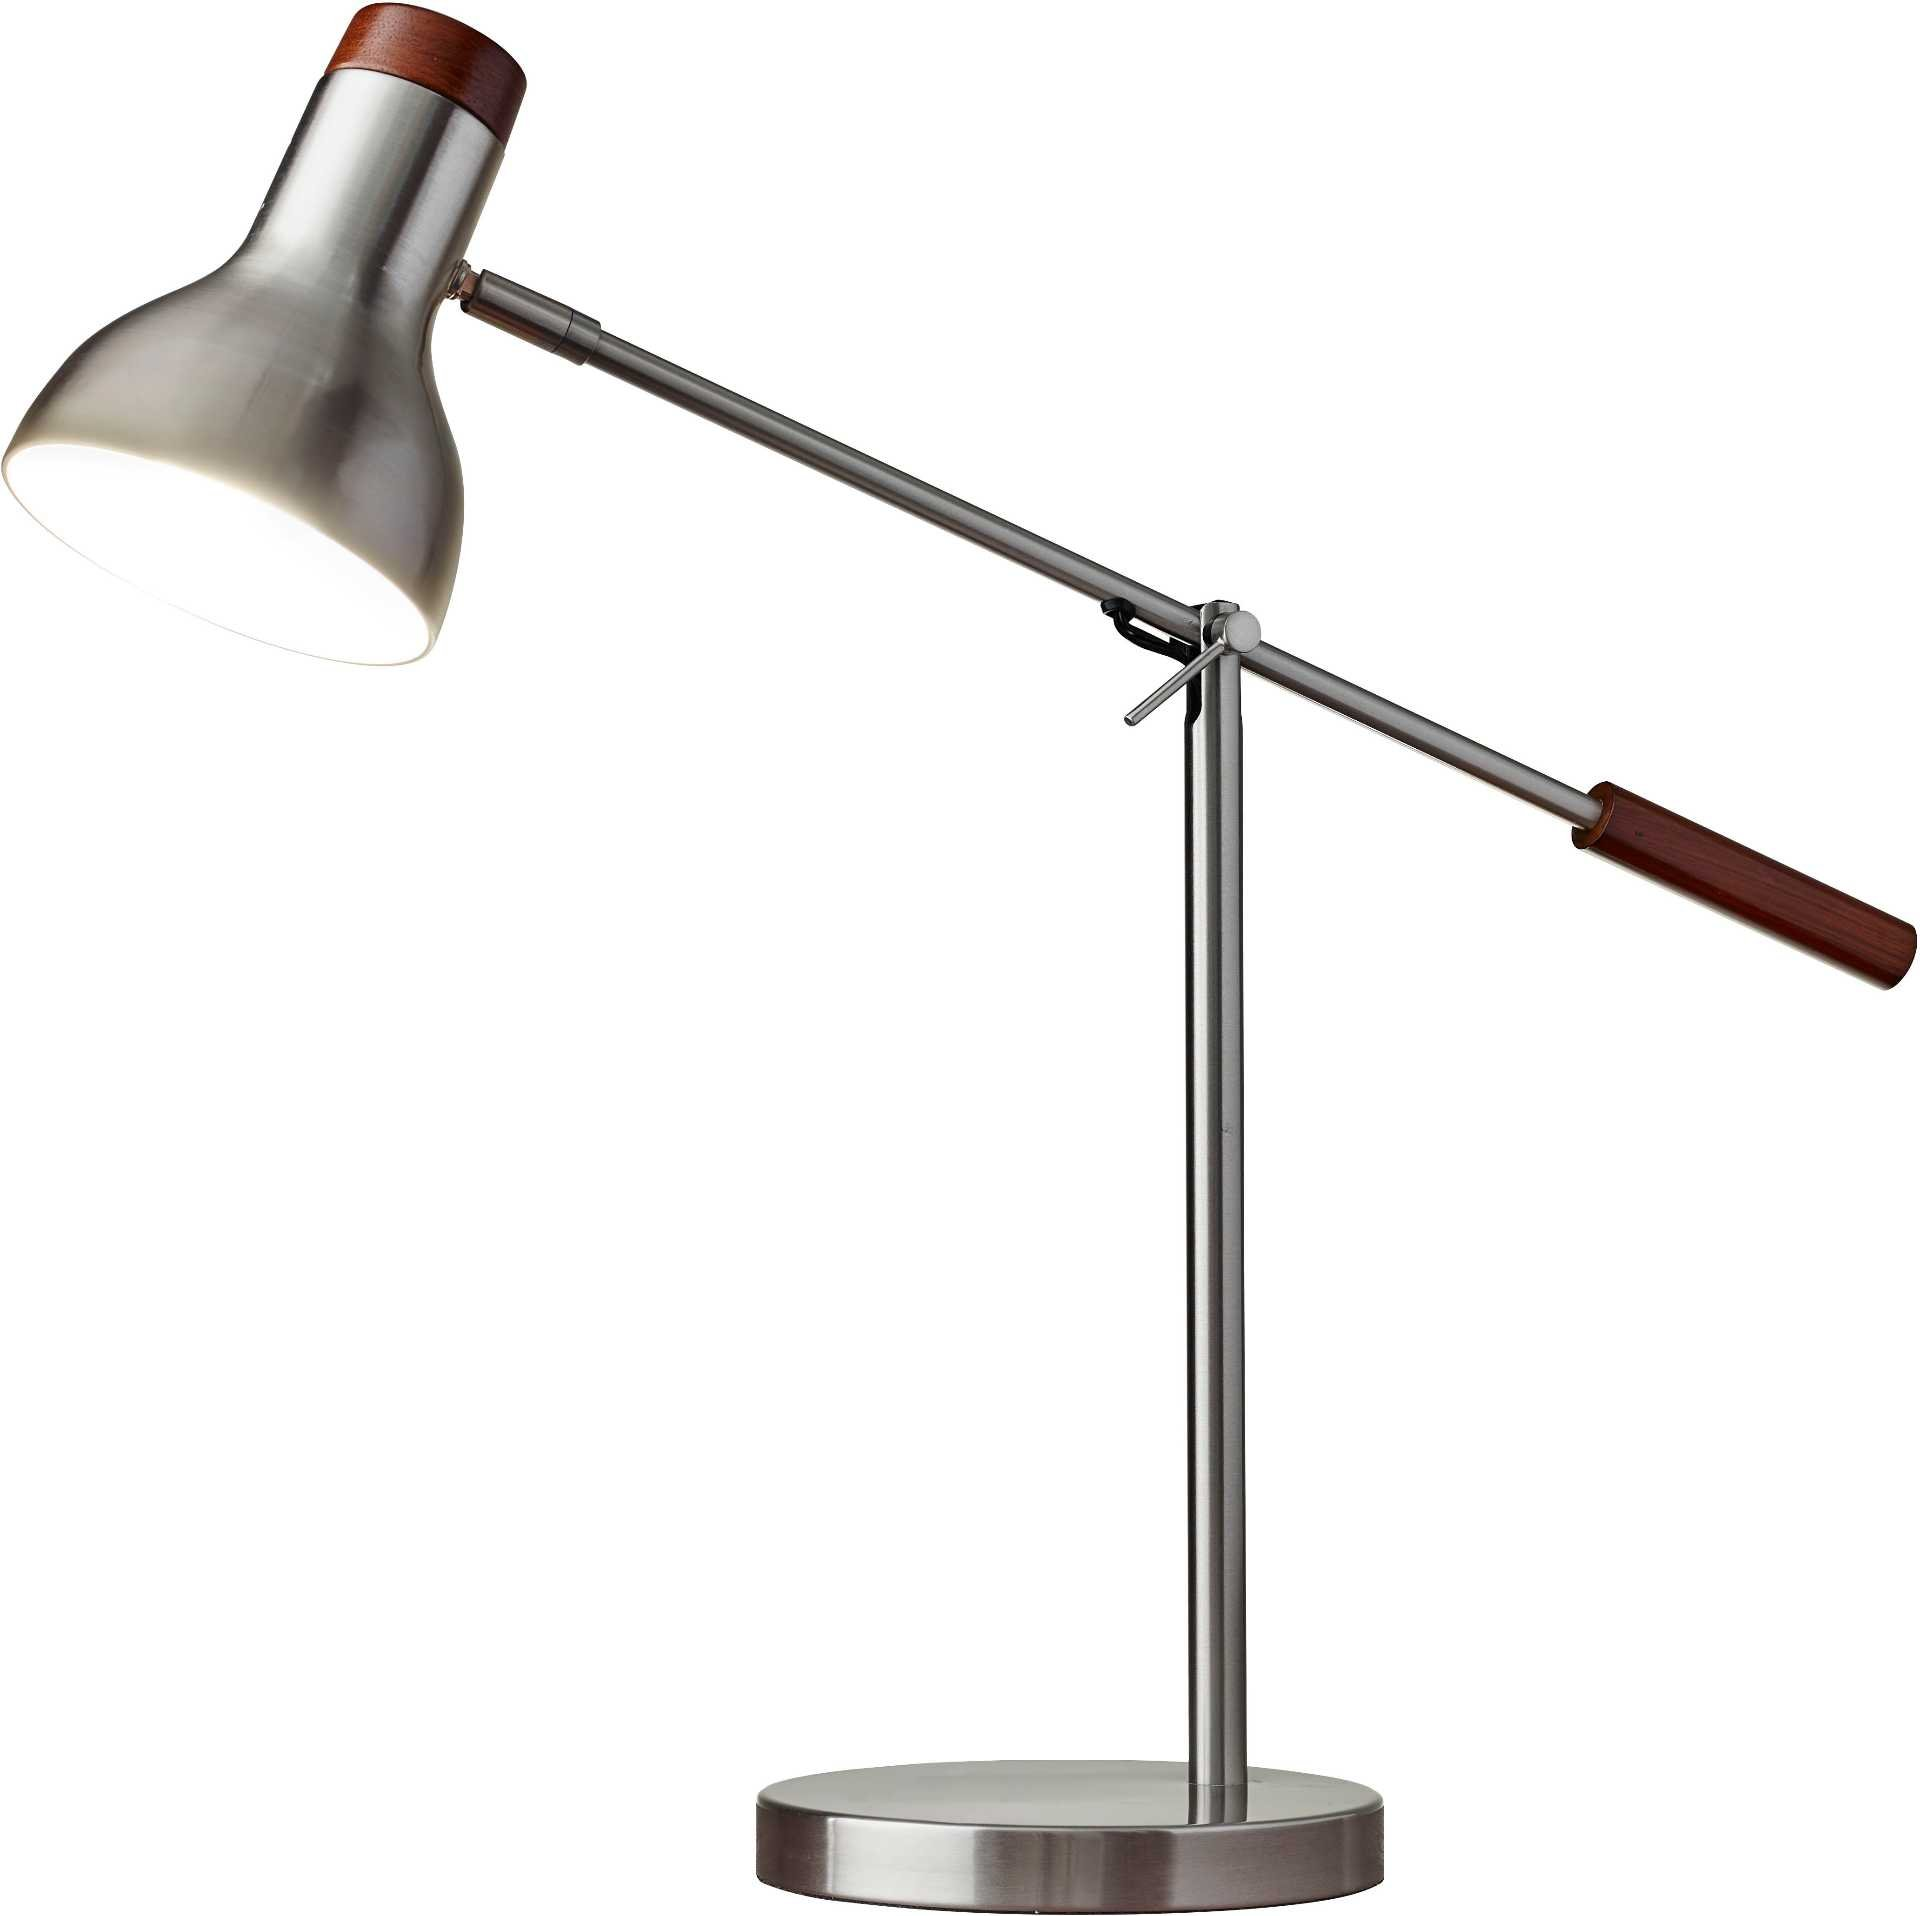 Adesso 4253-22 Watson 18.5''-24.5'' Desk Lamp, Satin Steel, Smart Outlet Compatible